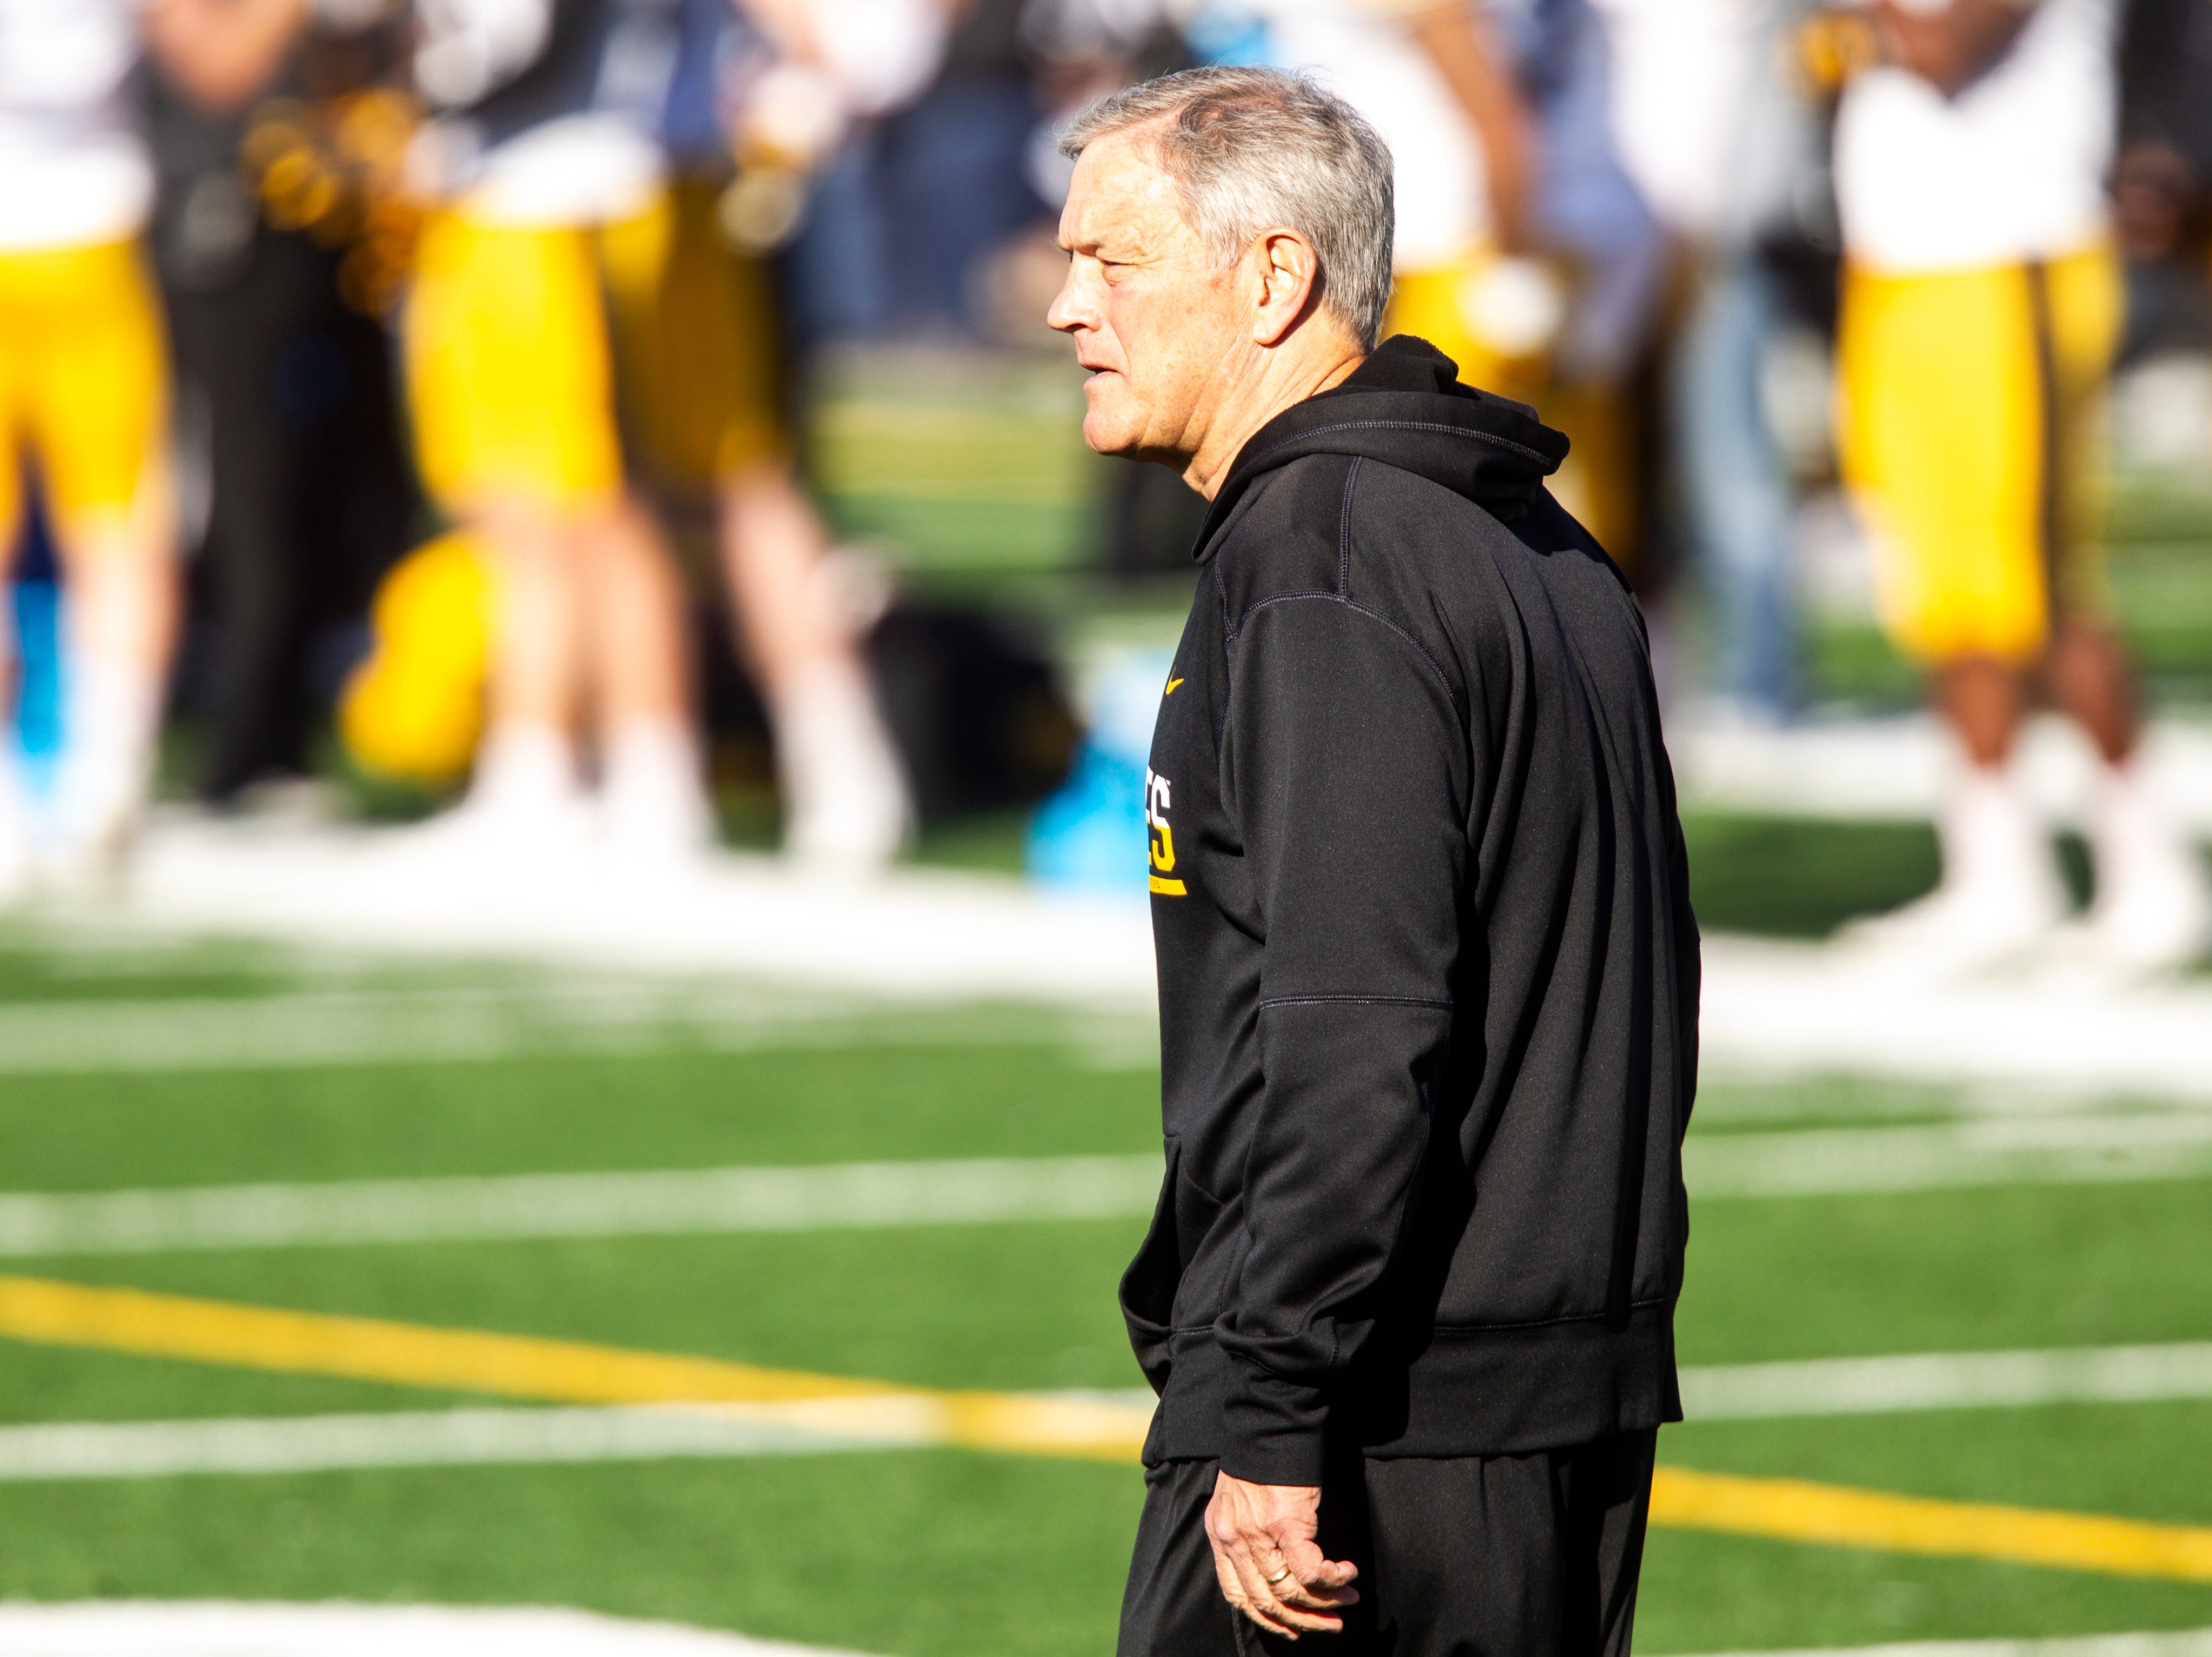 Iowa head coach Kirk Ferentz is pictured during the final spring football practice, Friday, April 26, 2019, at the University of Iowa outdoor practice facility in Iowa City, Iowa.